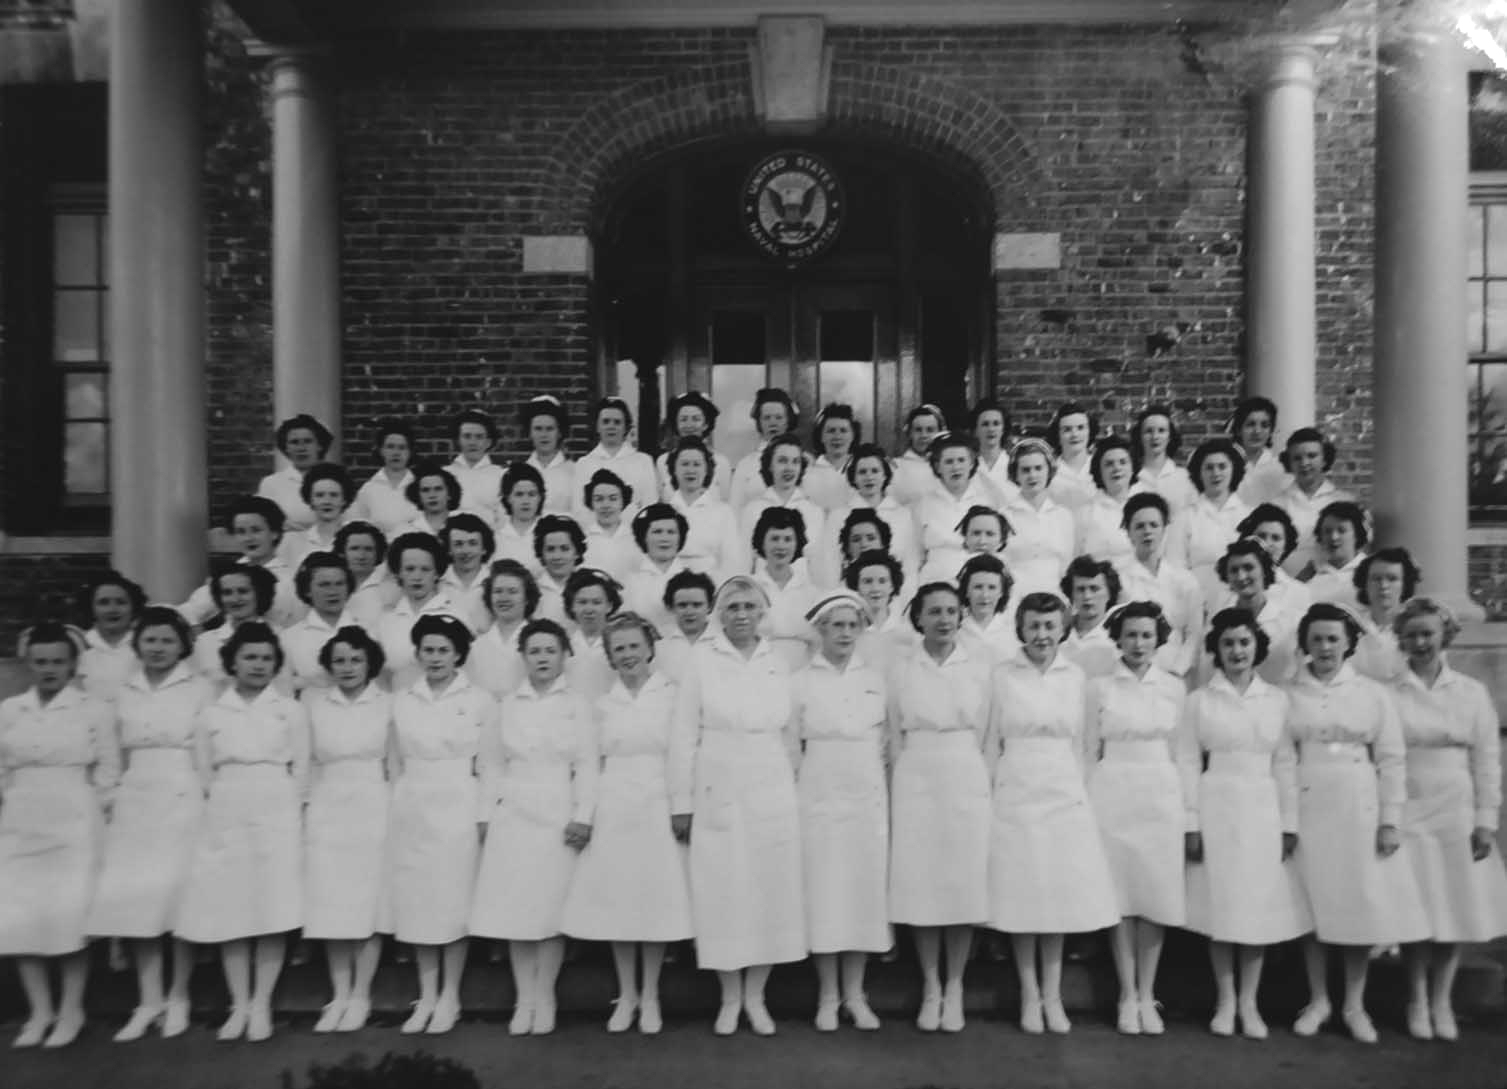 Bremerton Naval Hospital Nurses Group Photo